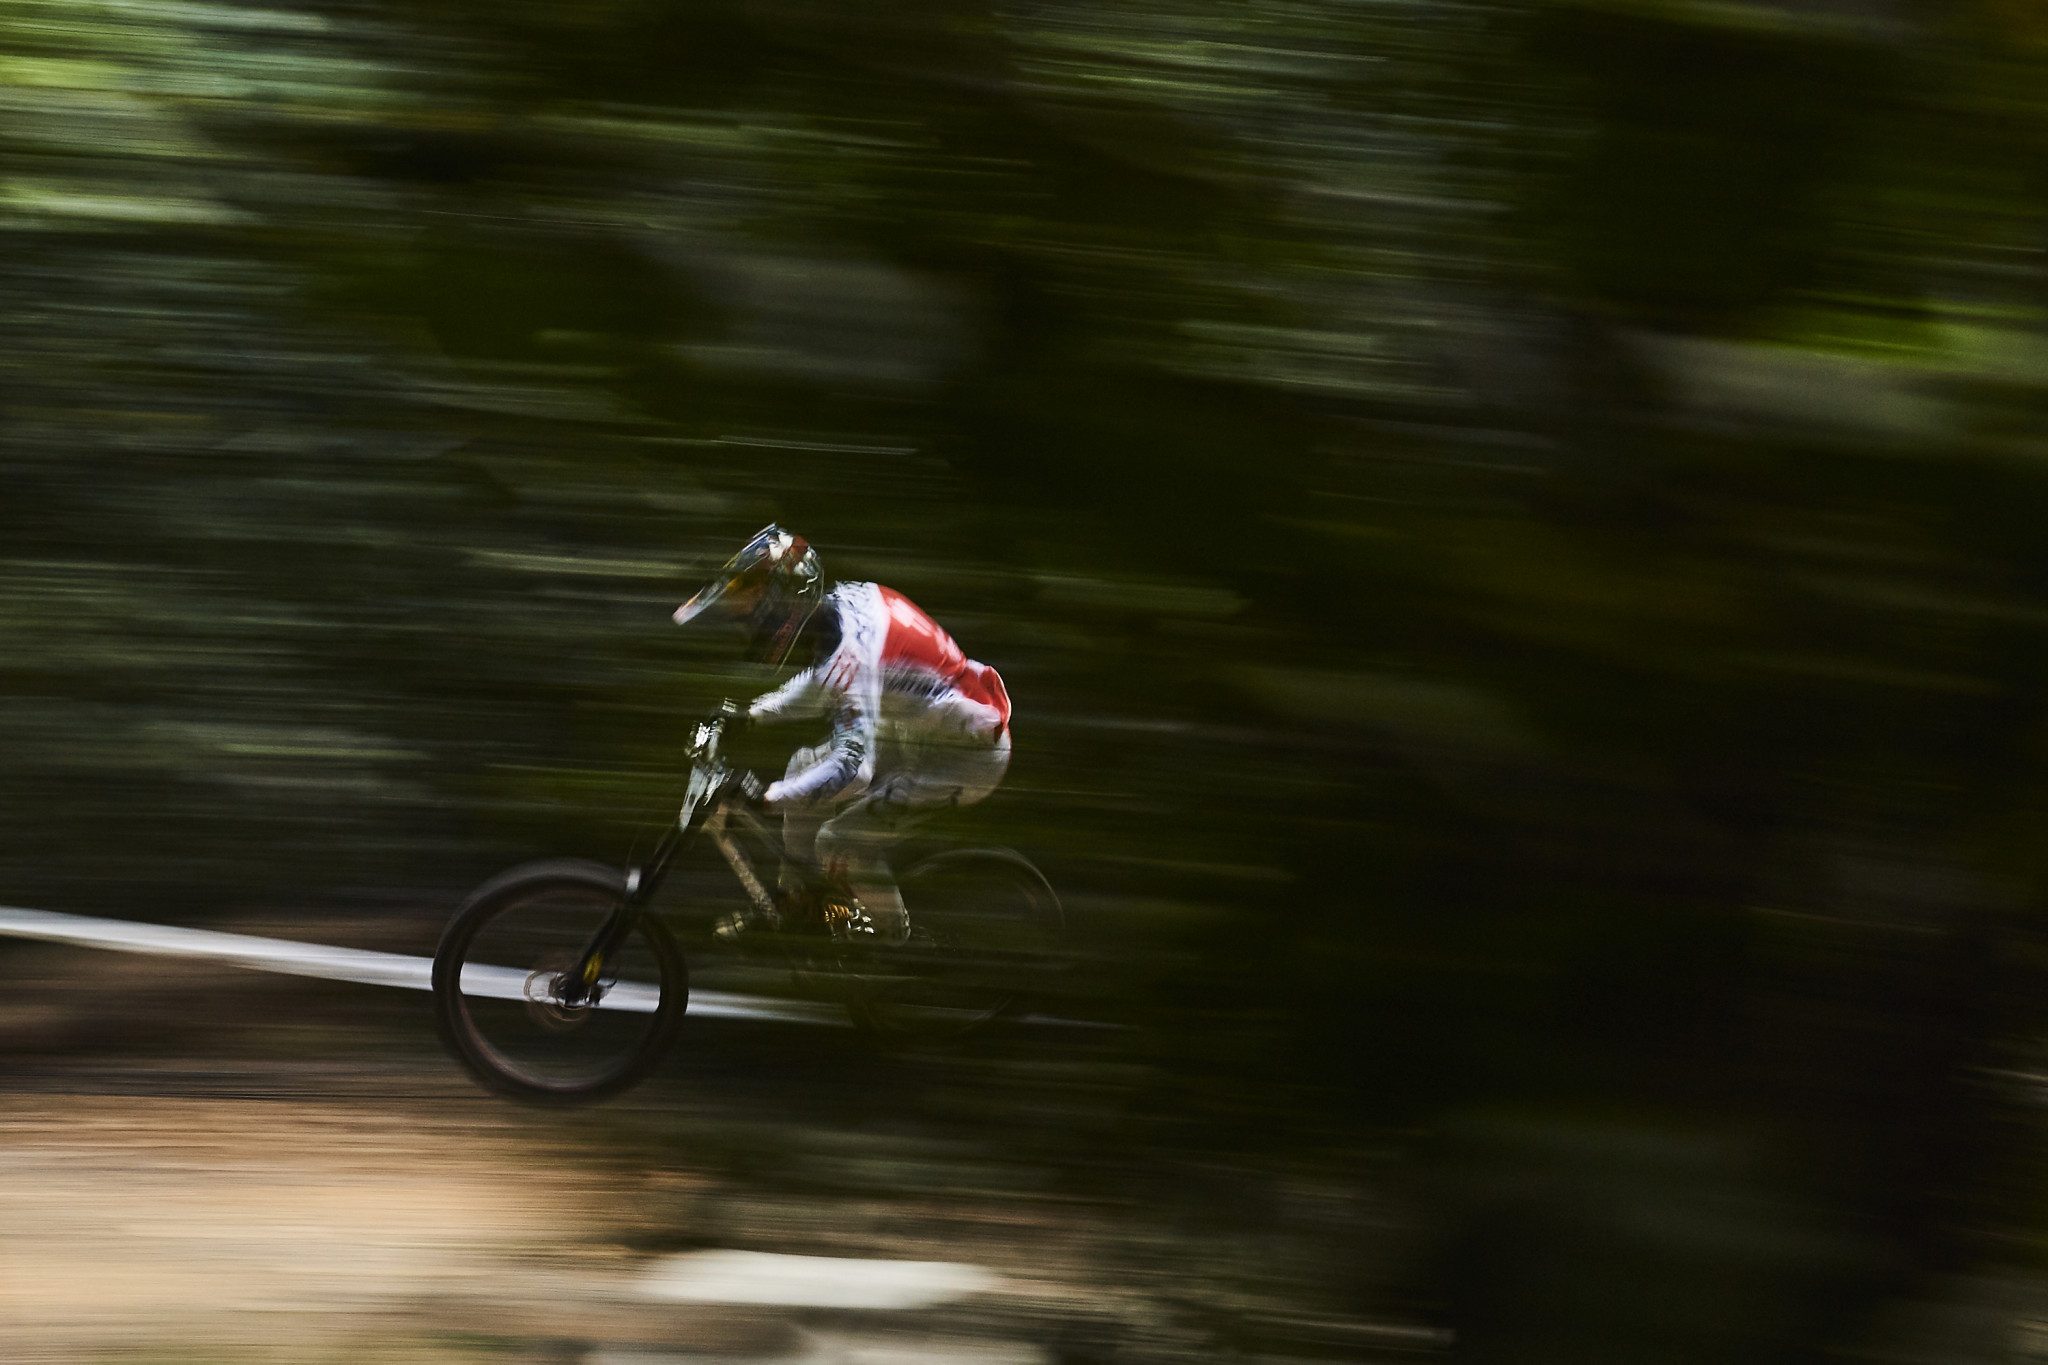 Forty-four nations ready for UCI Mountain Bike World Championships in Mont-Sainte-Anne